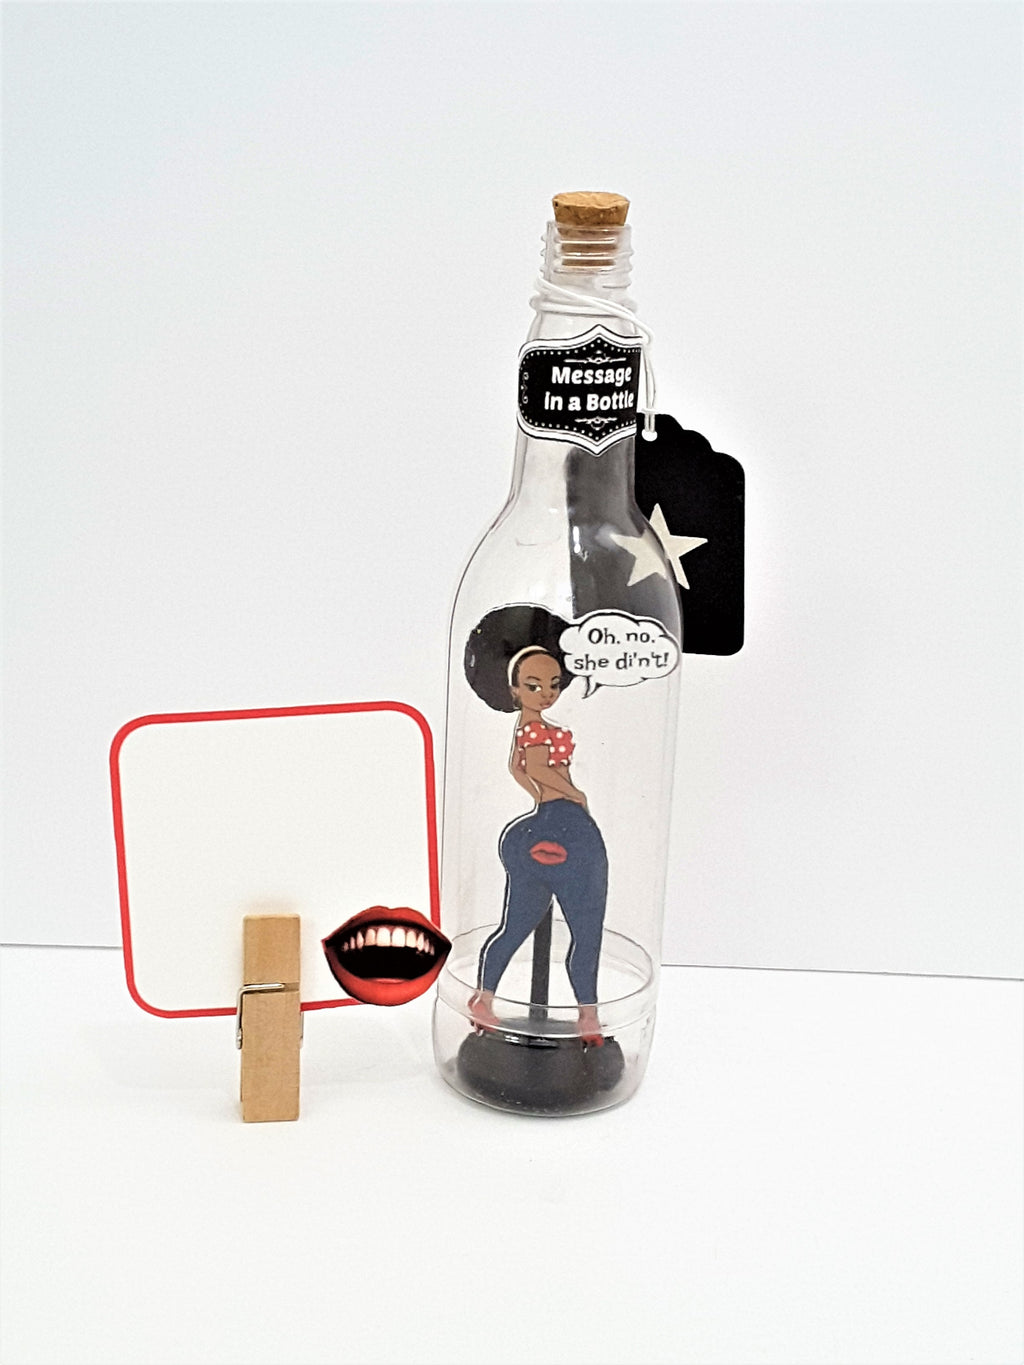 Sassy Black Girl Message in a Bottle - TheLastWordBish.com